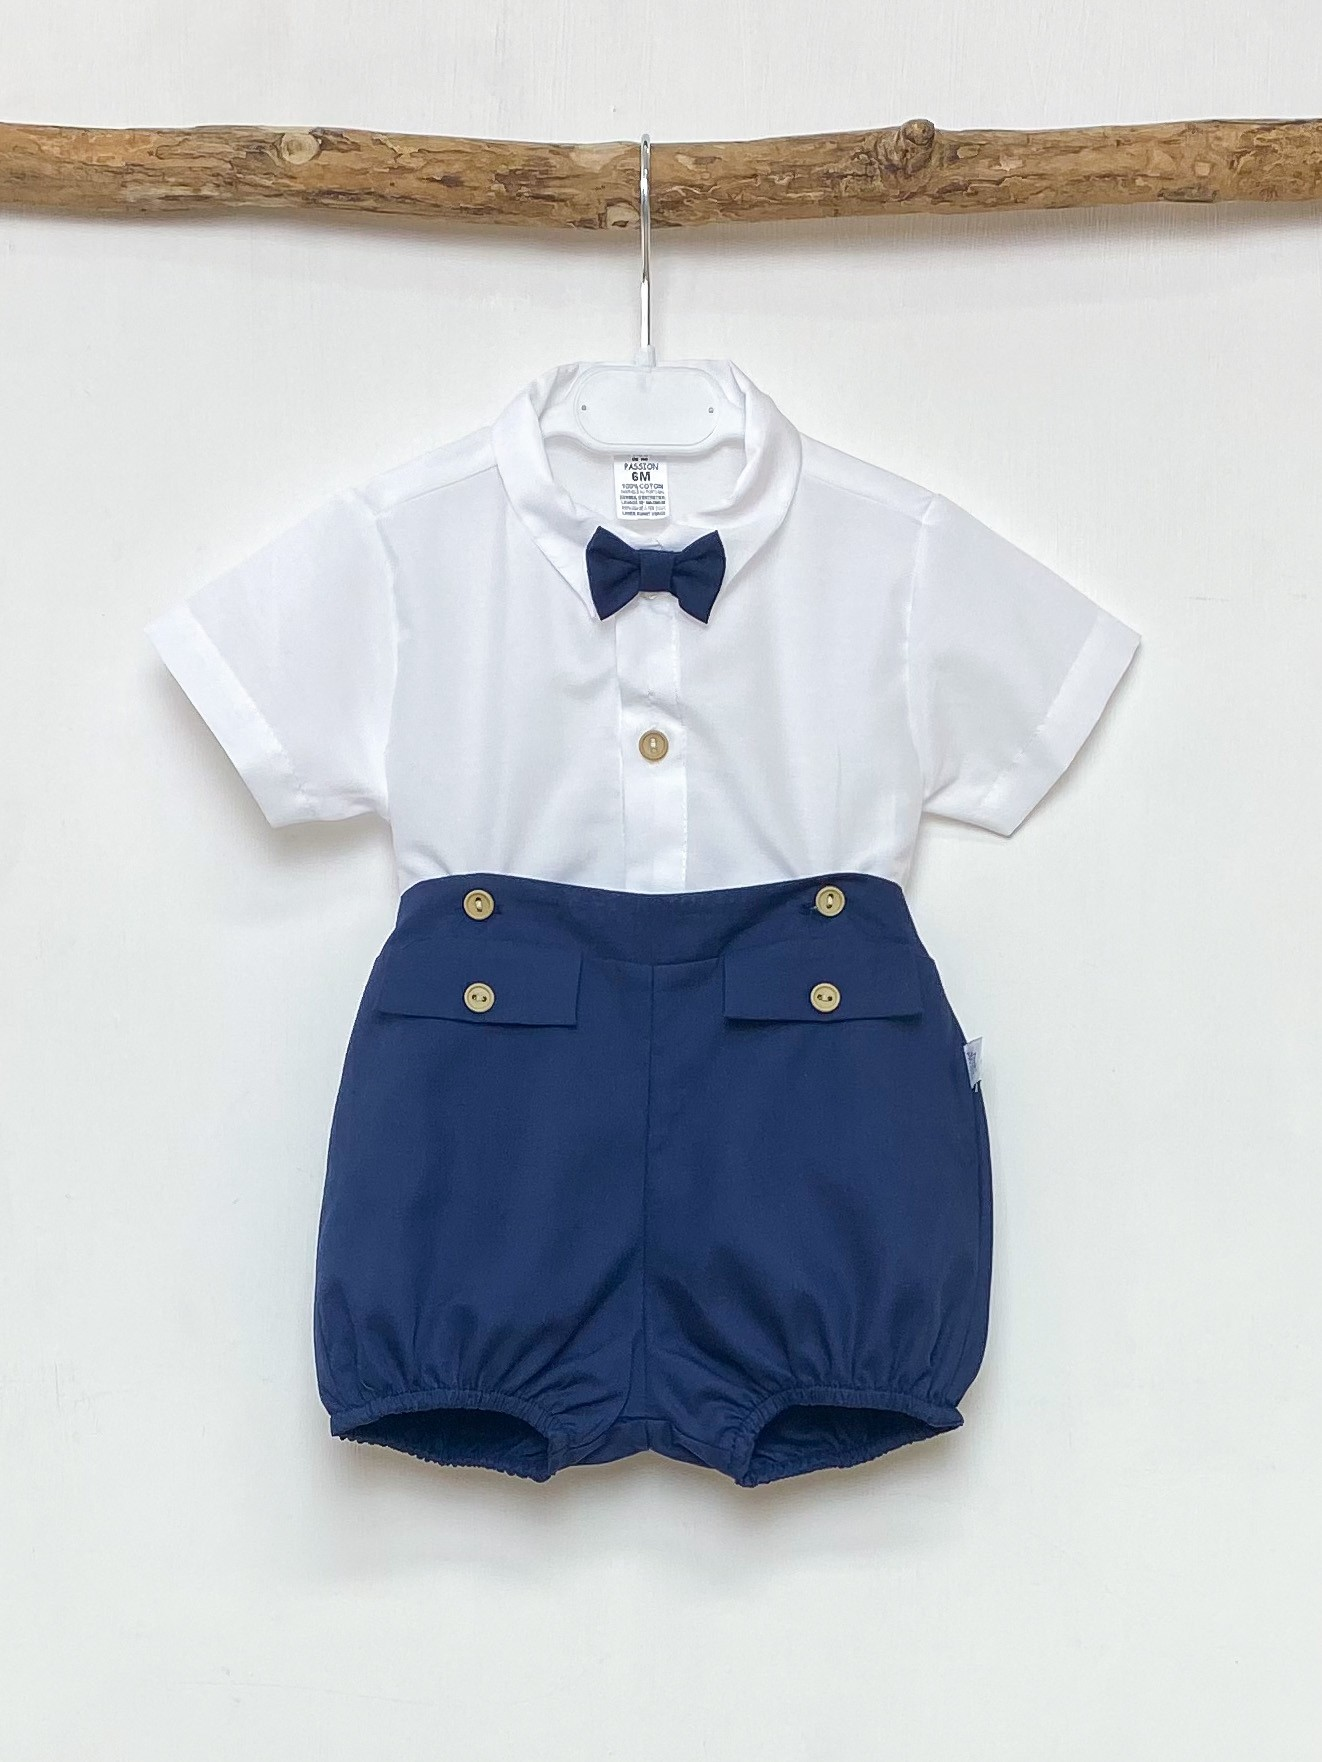 Bow Tie Shirt & Navy Shorts